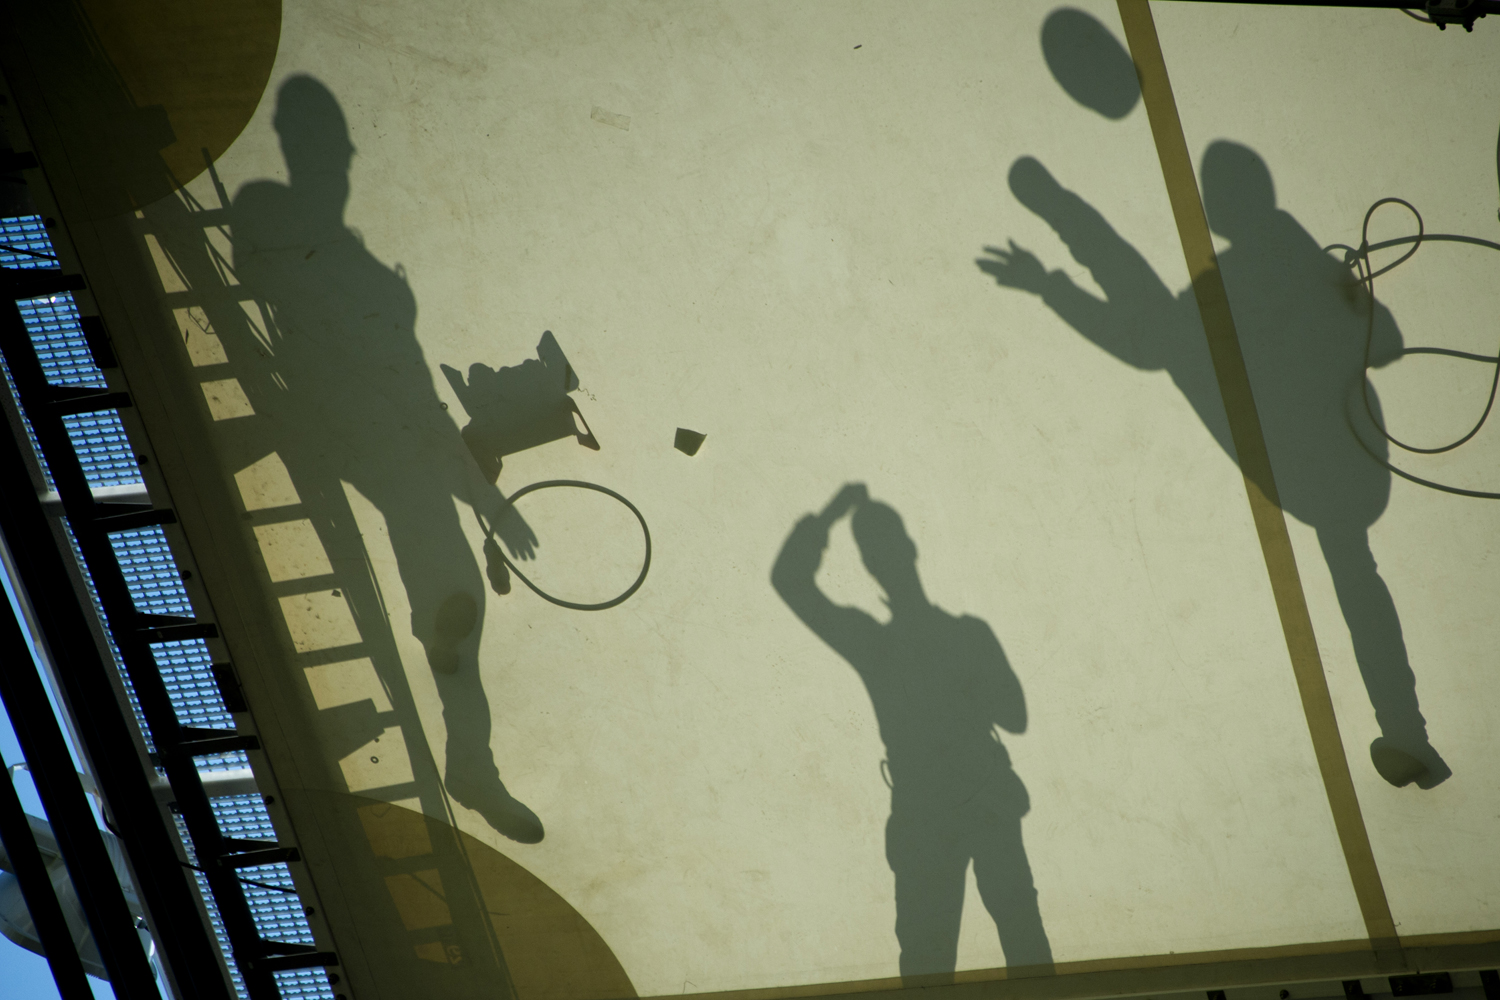 May 15, 2013. Workers are silhouetted on the roof as they play with a helmet during the visit of the FIFA Secretary General Jerome Valcke at the Maracana stadium in Rio de Janeiro, Brazil.